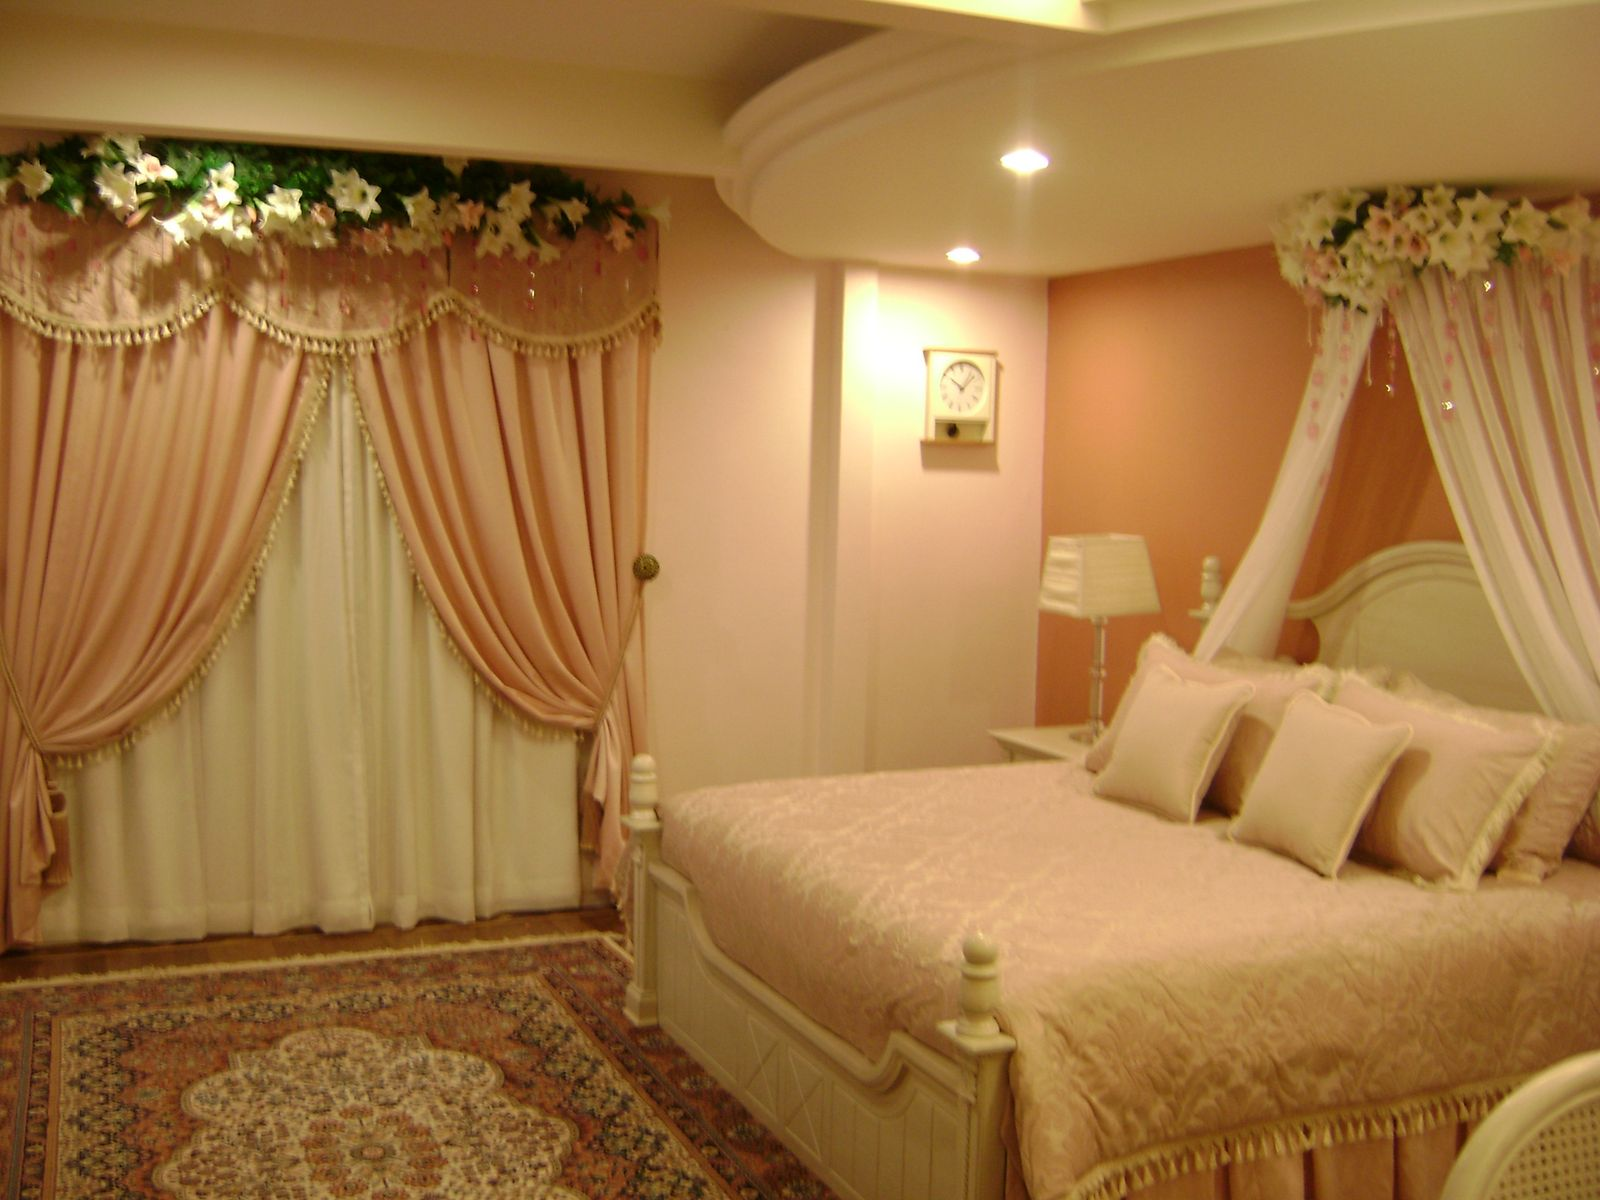 Girlsvilla wedding room decoration Married to design